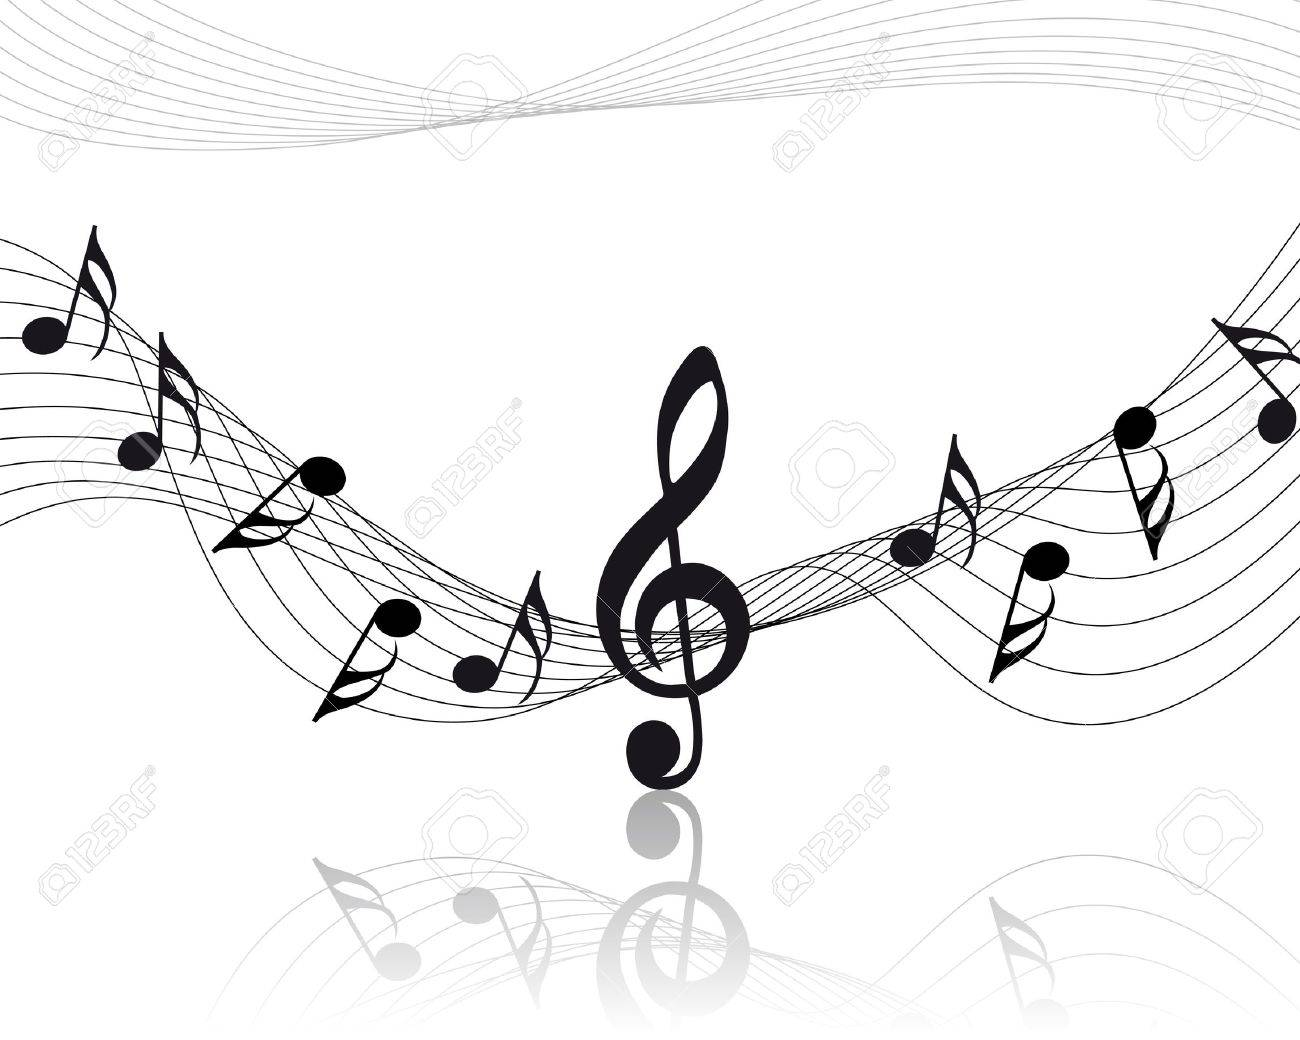 minim music note images u0026 stock pictures royalty free minim music